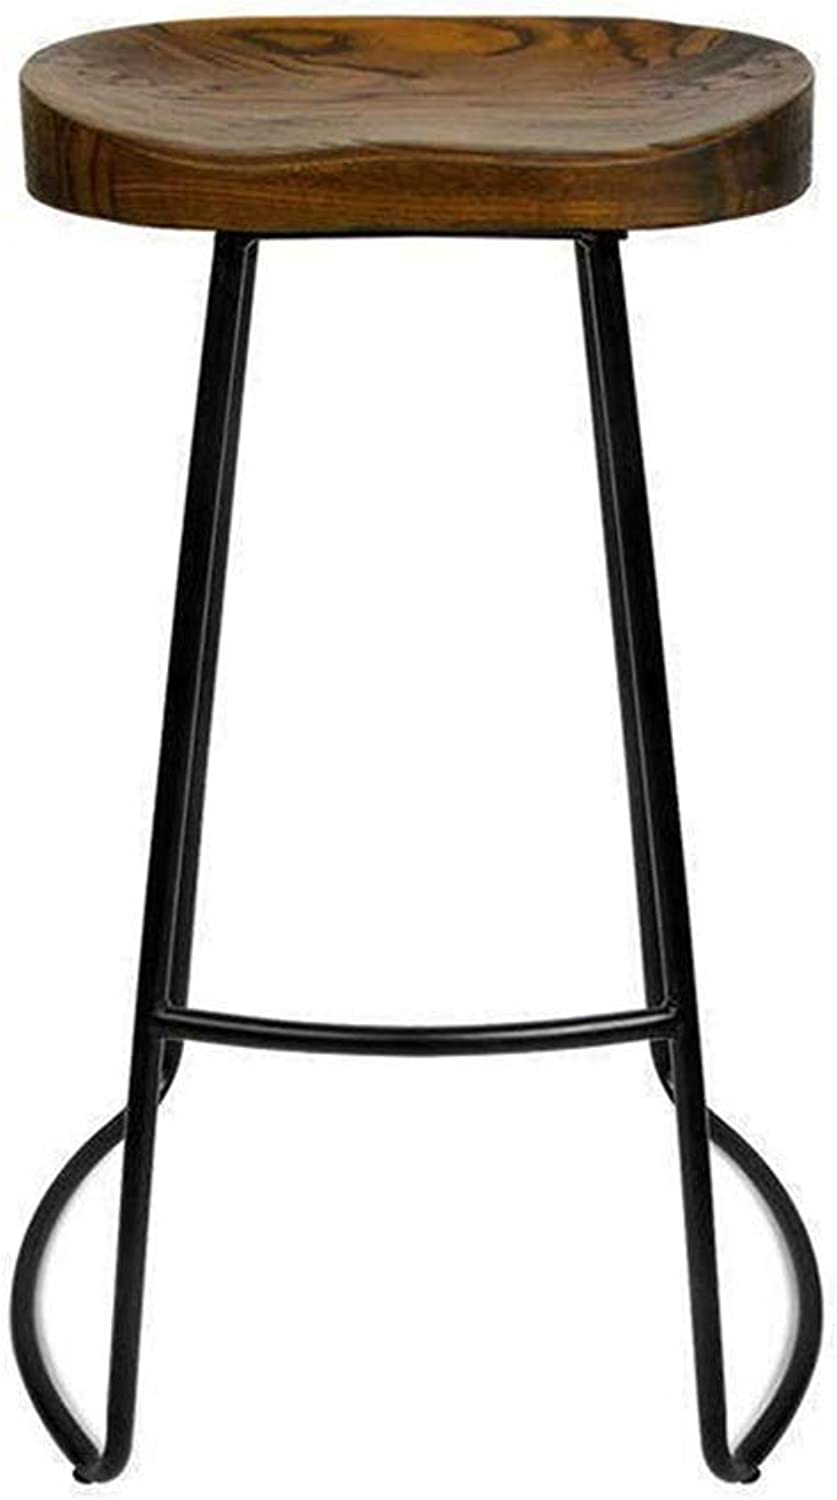 Brown Bar Stool, Bar Chair High Bench High Stool, Kitchen Breakfast Cafe Bar, Industrial Bar Stool Metal Legs, Maximum Load 150kg (Size   Seat Height 65cm)